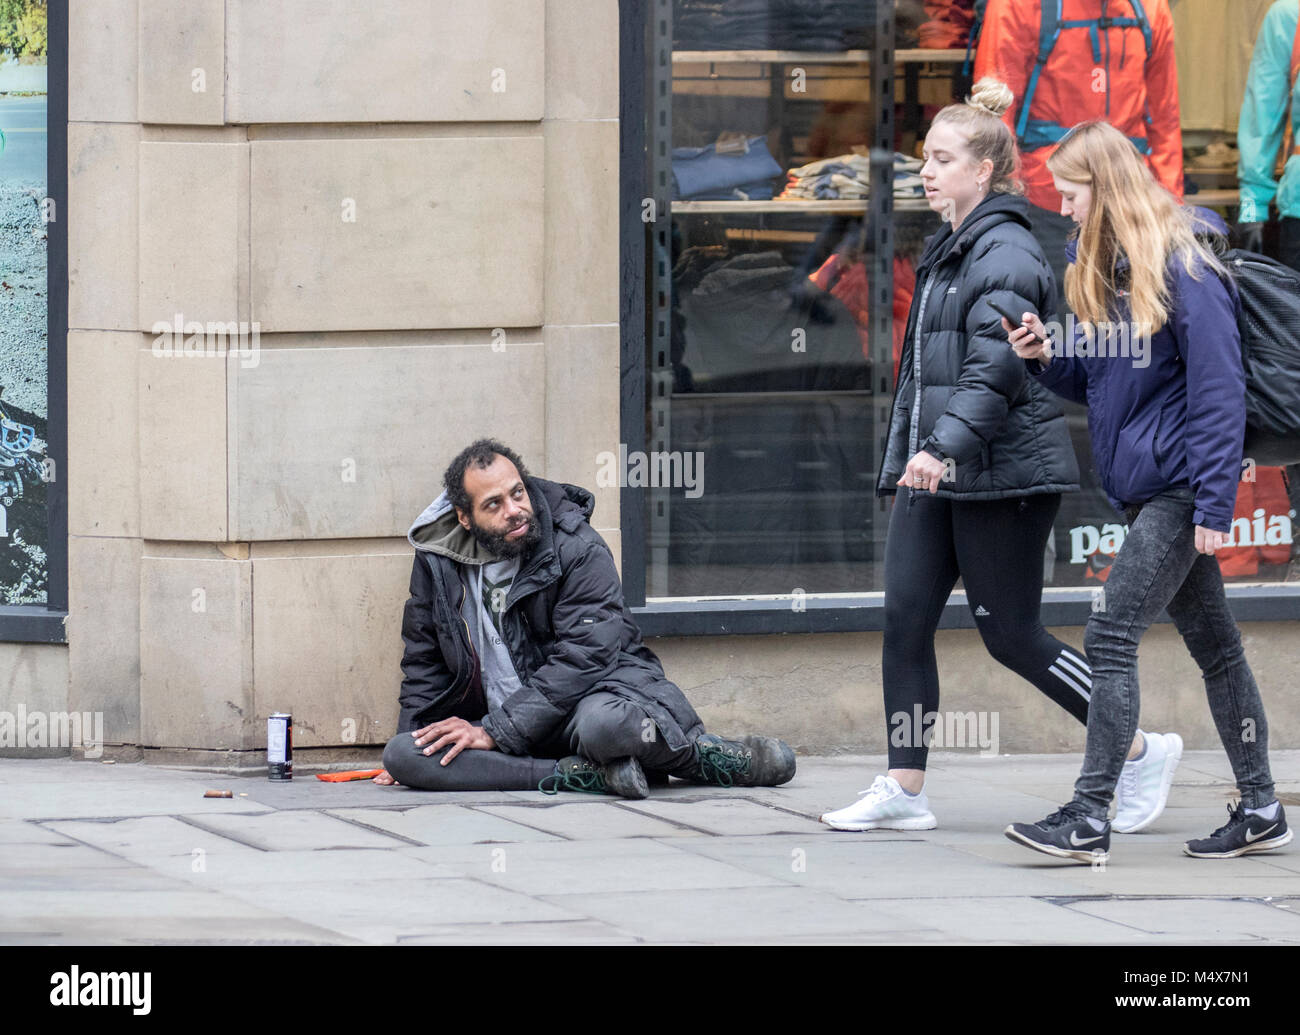 homeless homelessness sleeping rough beg beggar begging hungry cold winter sad donation money tramp hobo poor poverty - Stock Image